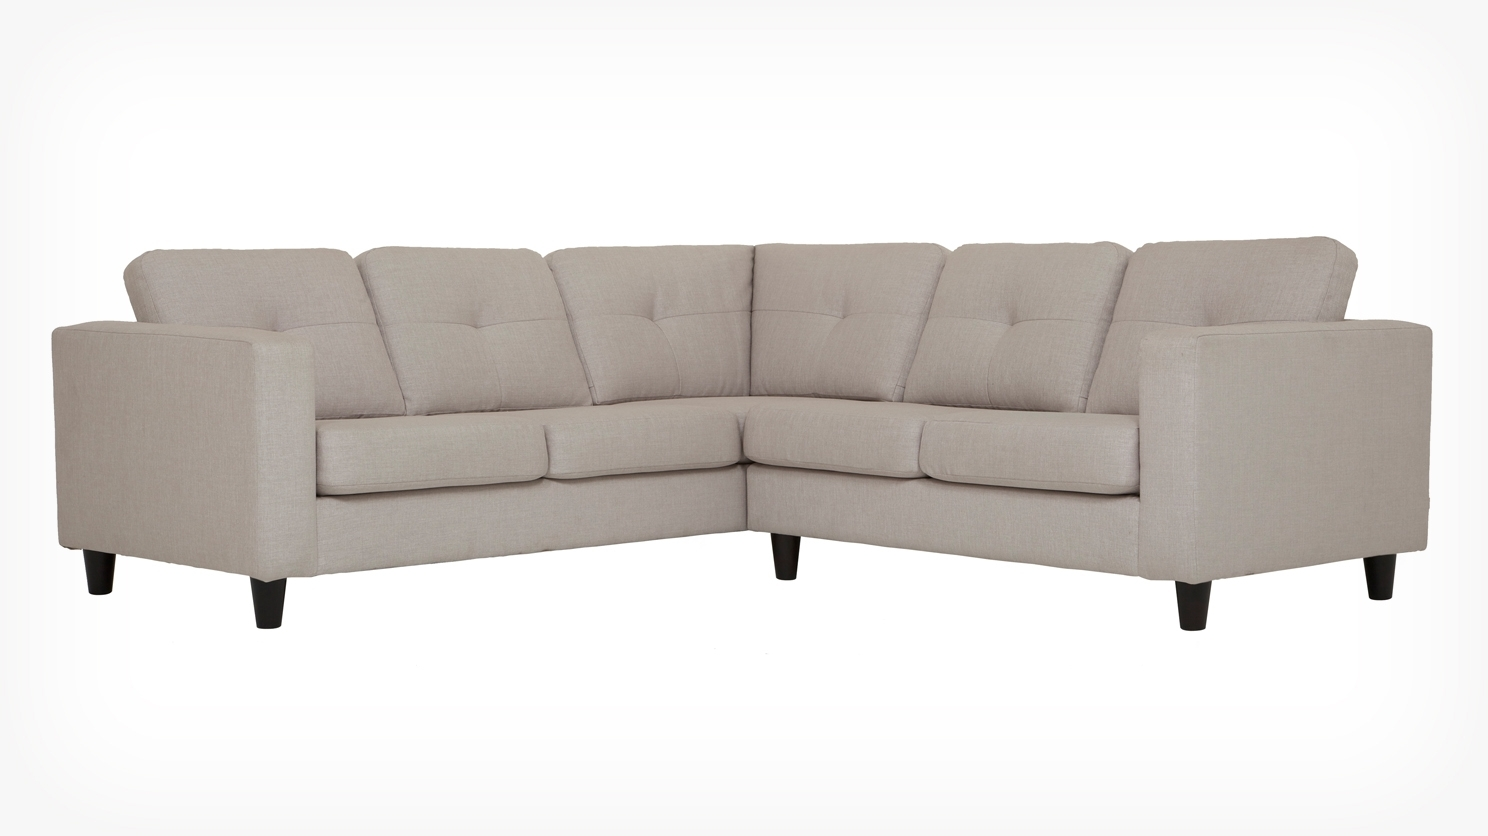 Eq3 | Living > Seating > Sectionals Inside Eq3 Sectional Sofas (Image 3 of 10)